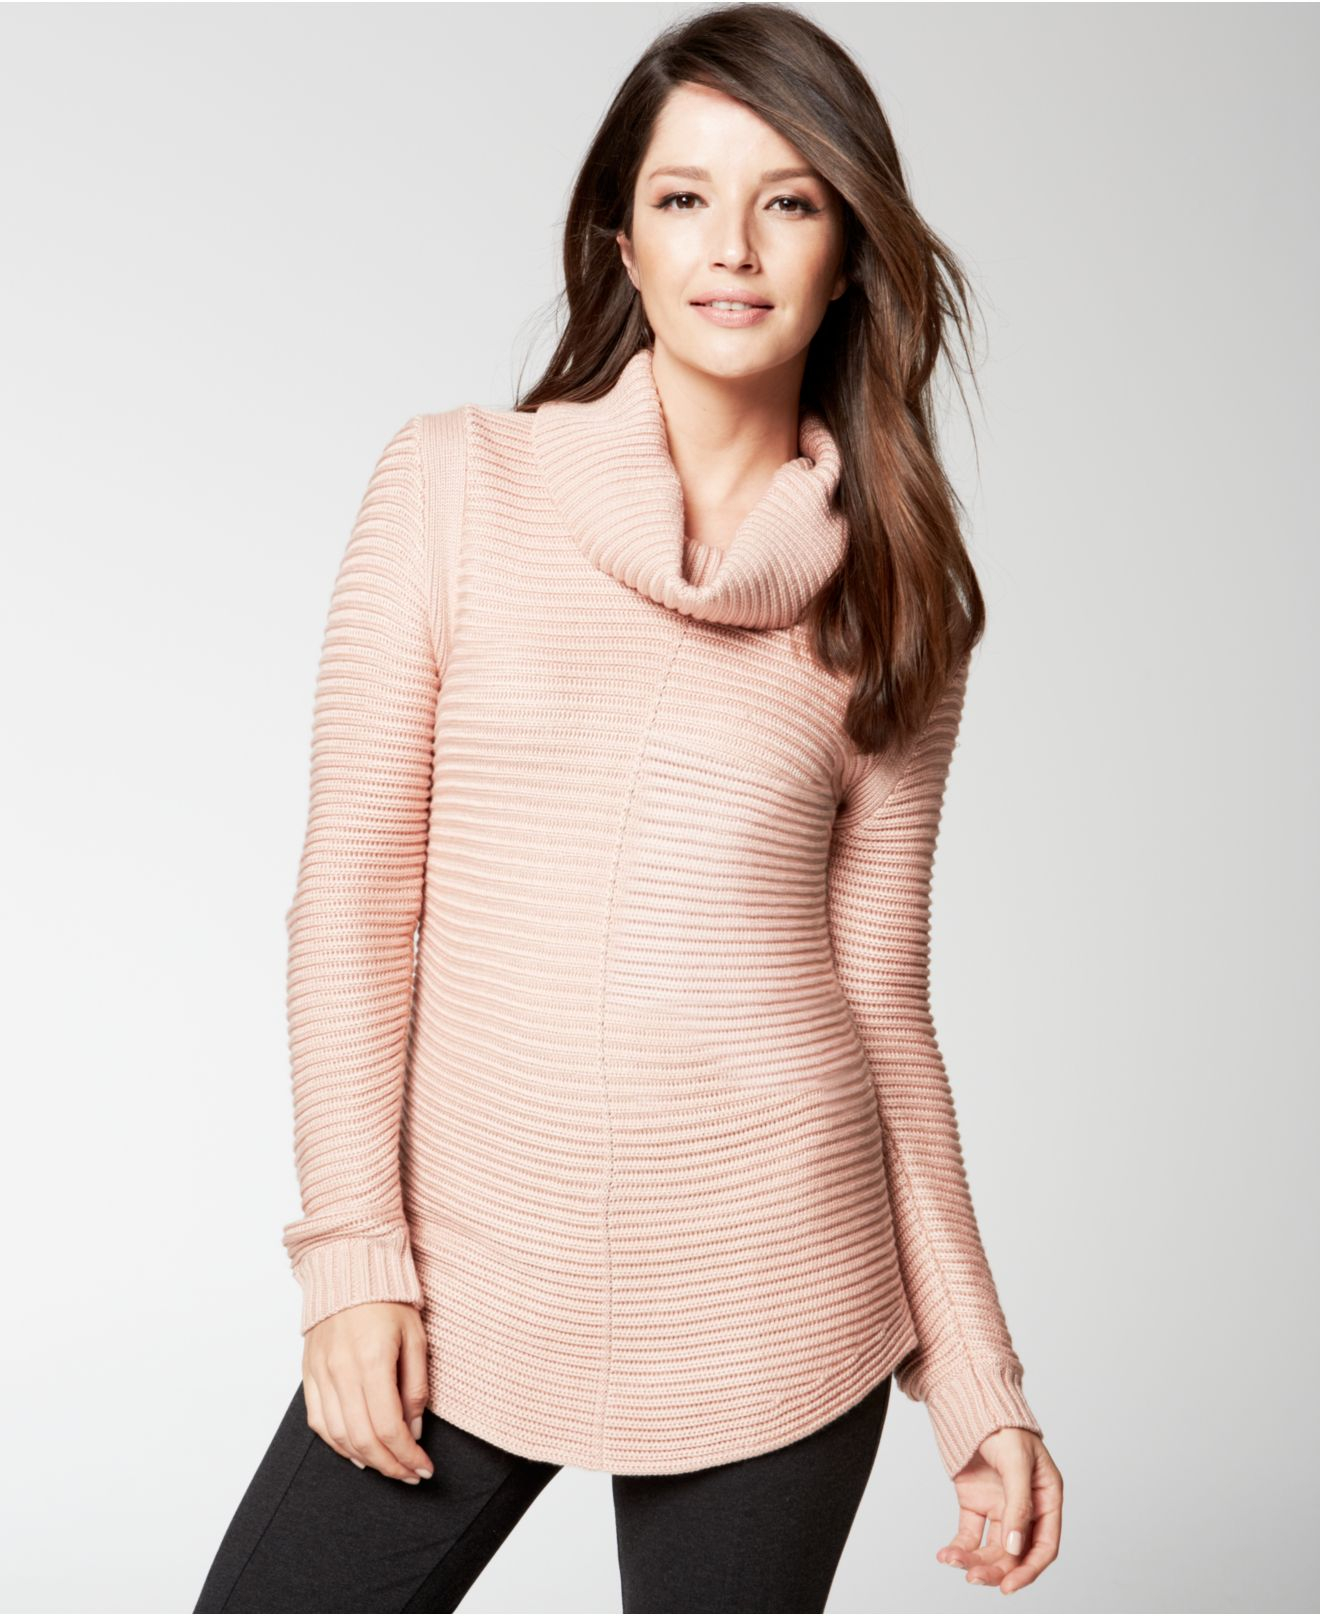 cb979a6a819 Calvin Klein Ribbed Cowl-Neck Sweater in Pink - Lyst